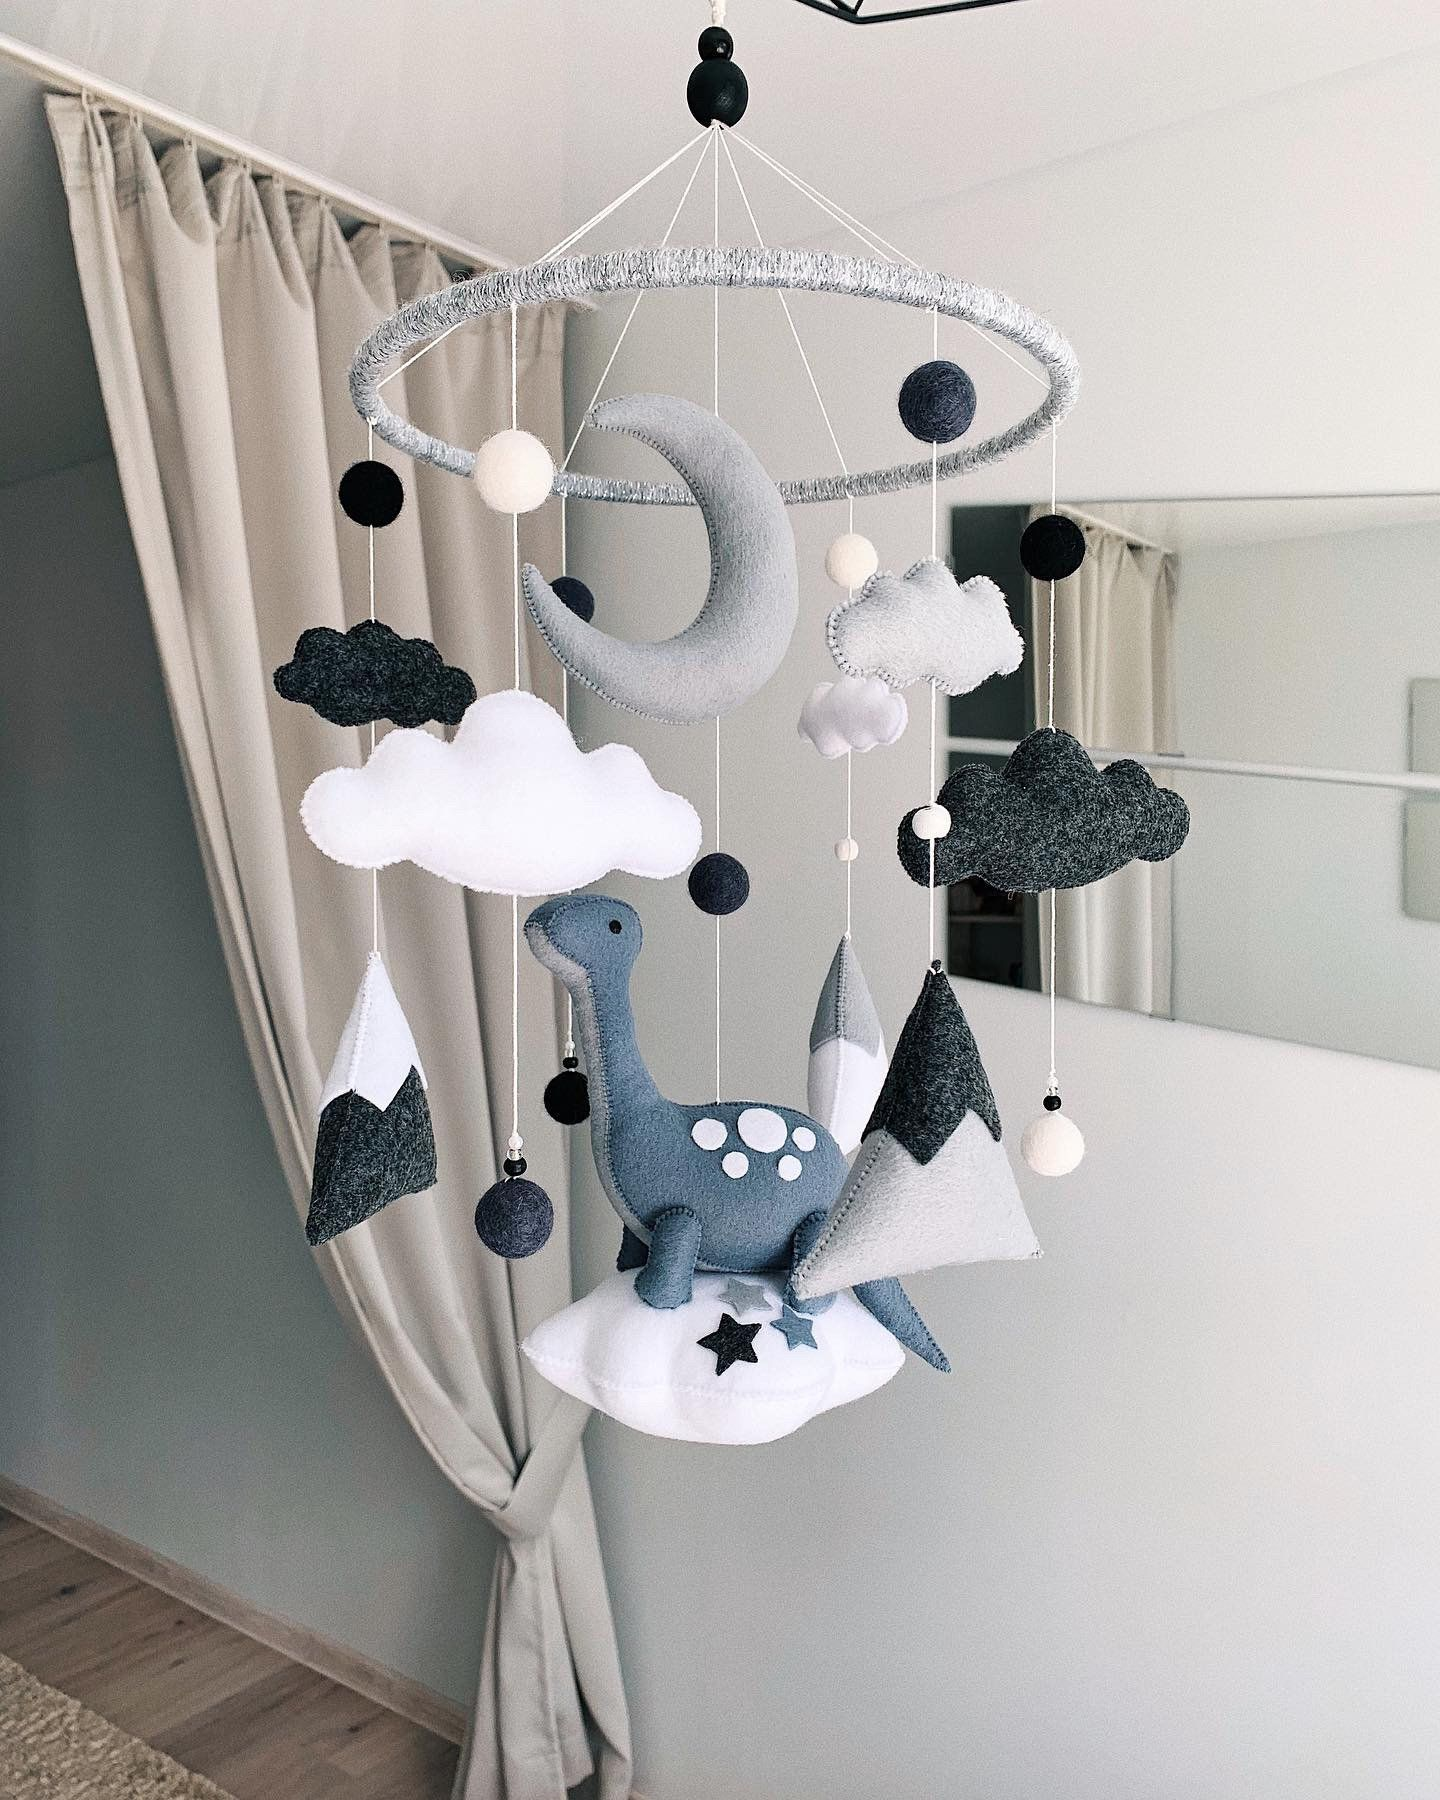 Dinosaur mobile/Crib mobile/Dinosaur on a cloud for nursery/Baby mobile with dinosaurs for baby nursery/ nursery decor/